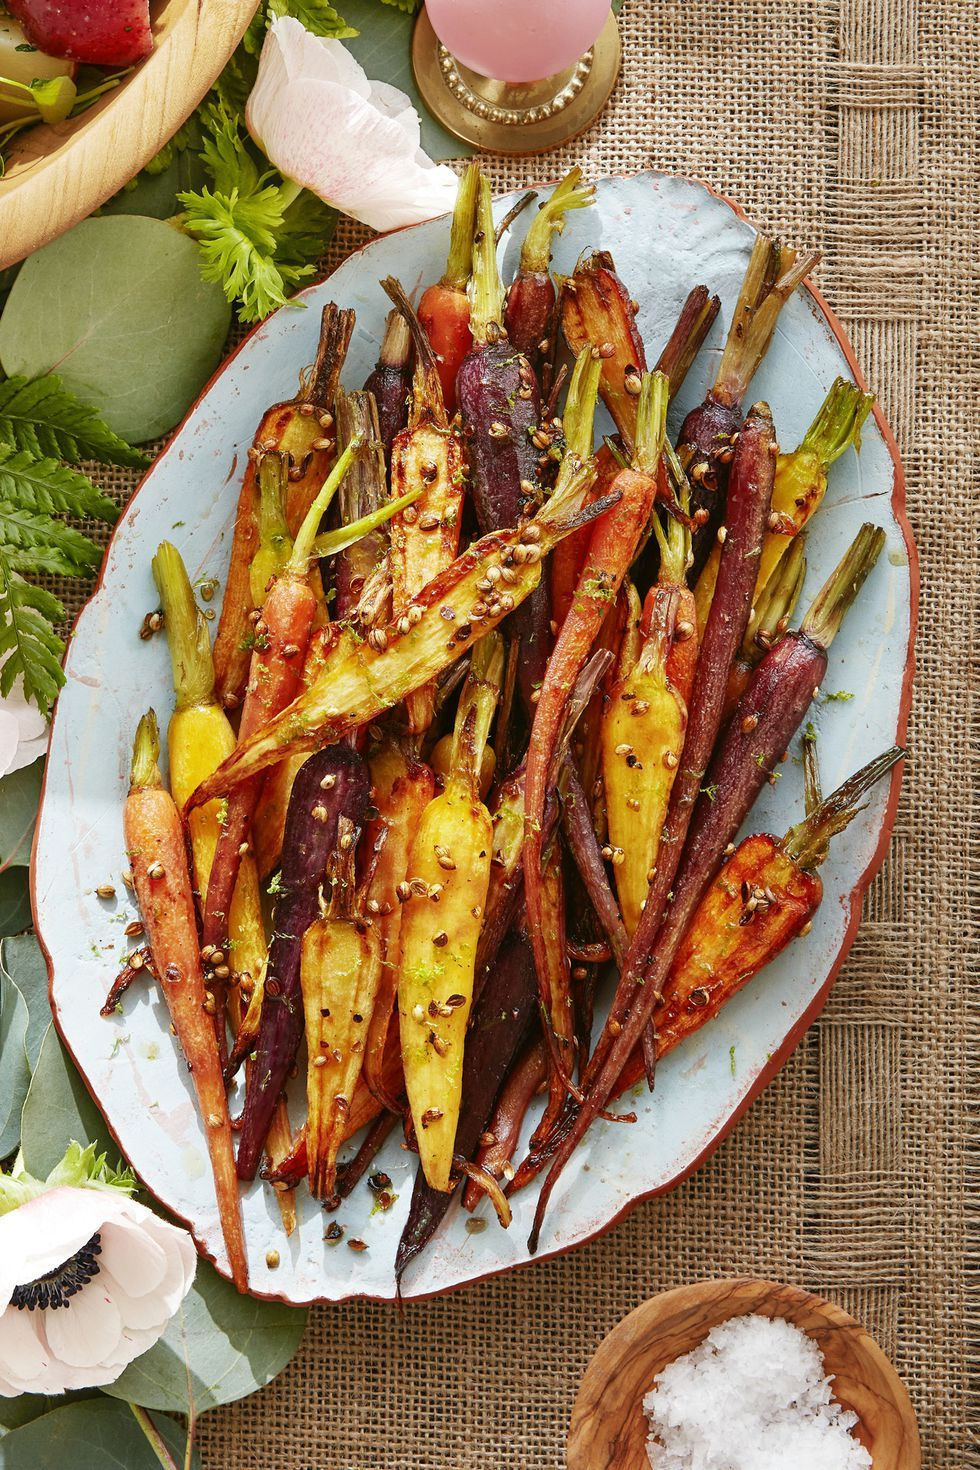 coriander-maple glazed carrots